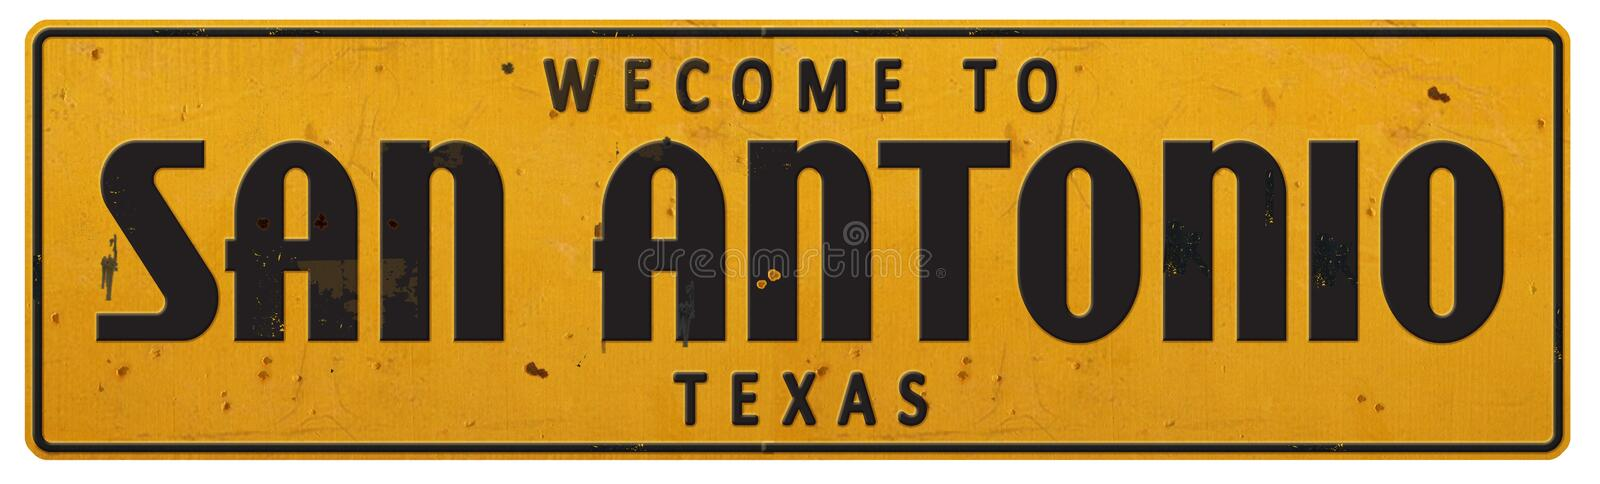 Vintage Rerto de San Antonio Texas Street Sign Grunge Rustic photos stock